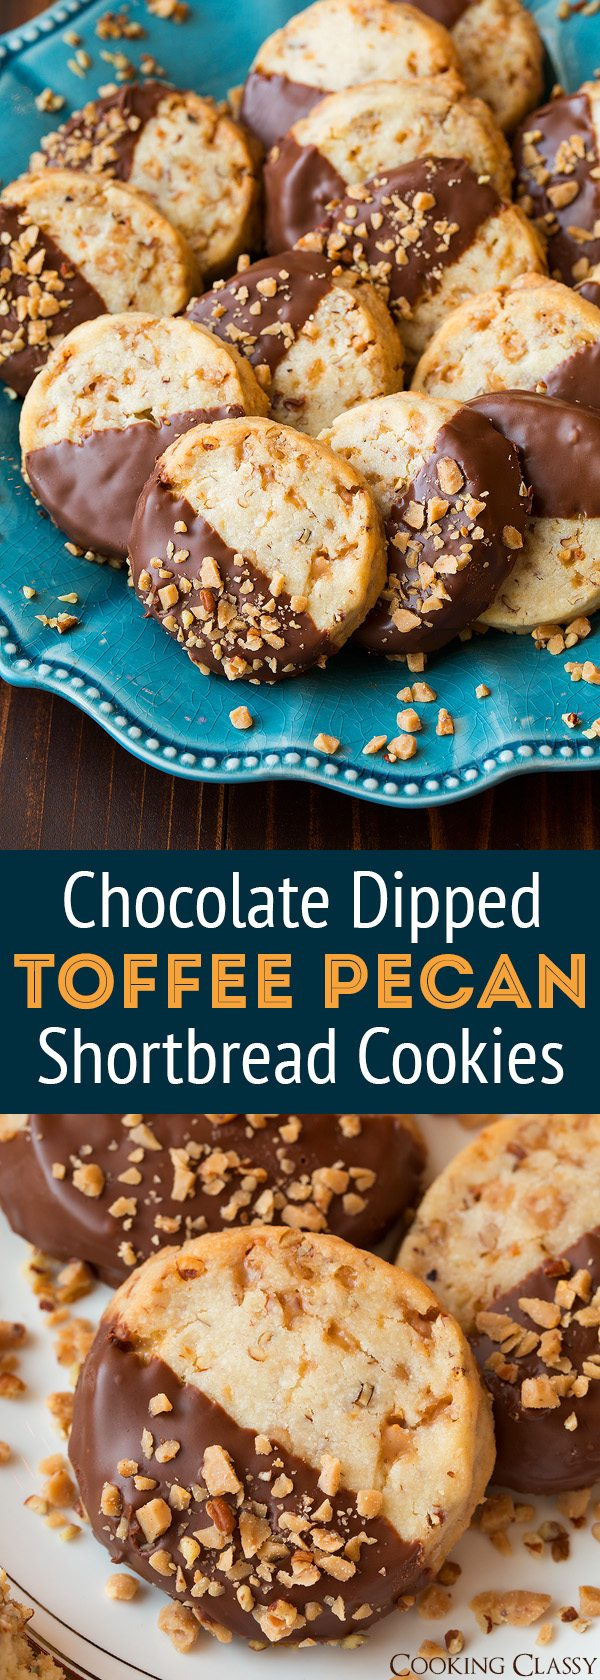 ... .cookingclassy.com/chocolate-dipped-toffee-pecan-shortbread-cookies